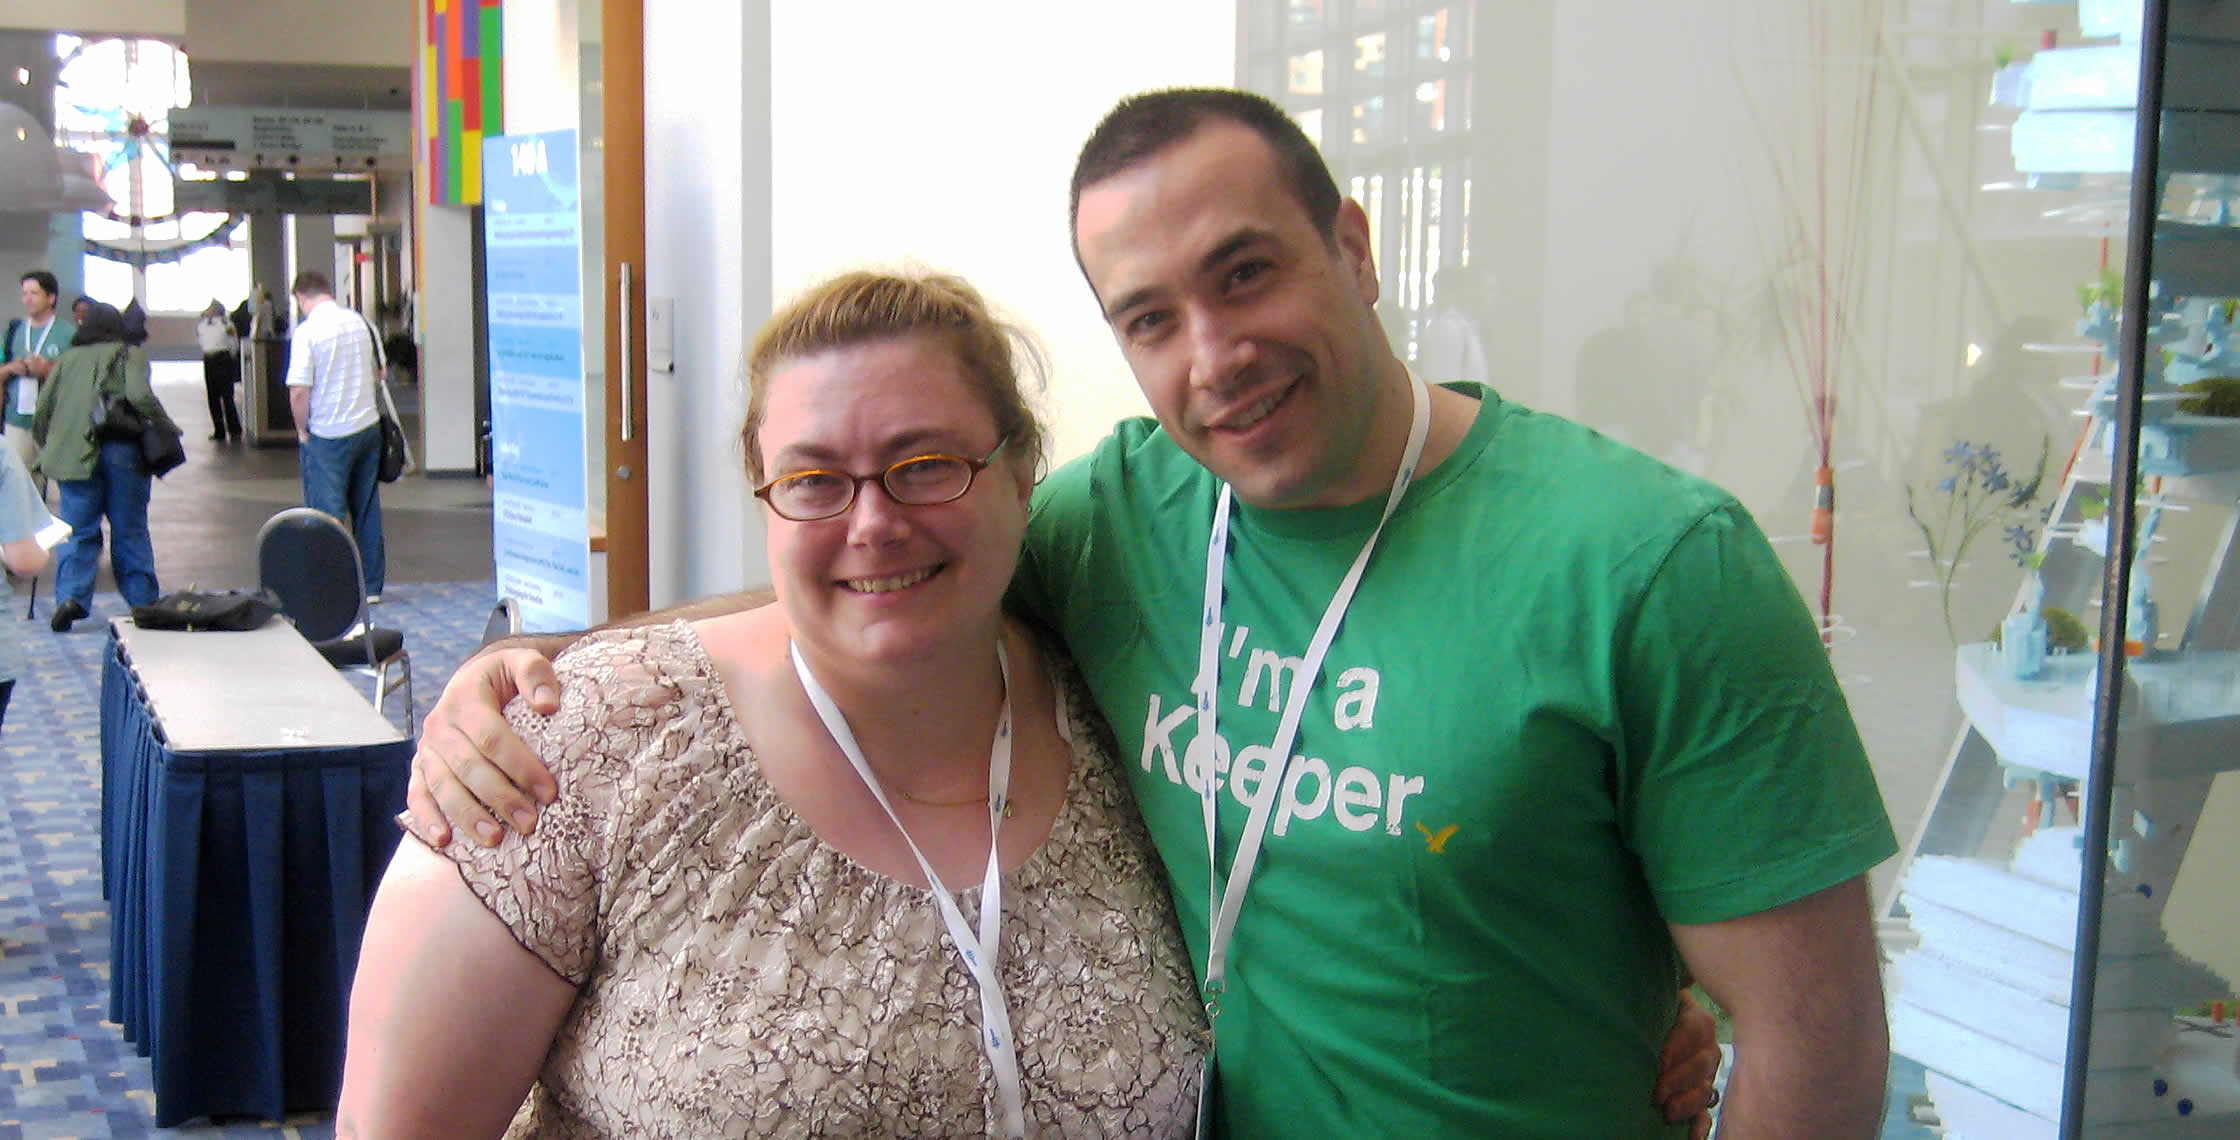 Ben Nadel at CFUNITED 2008 (Washington, D.C.) with: Karen Leary